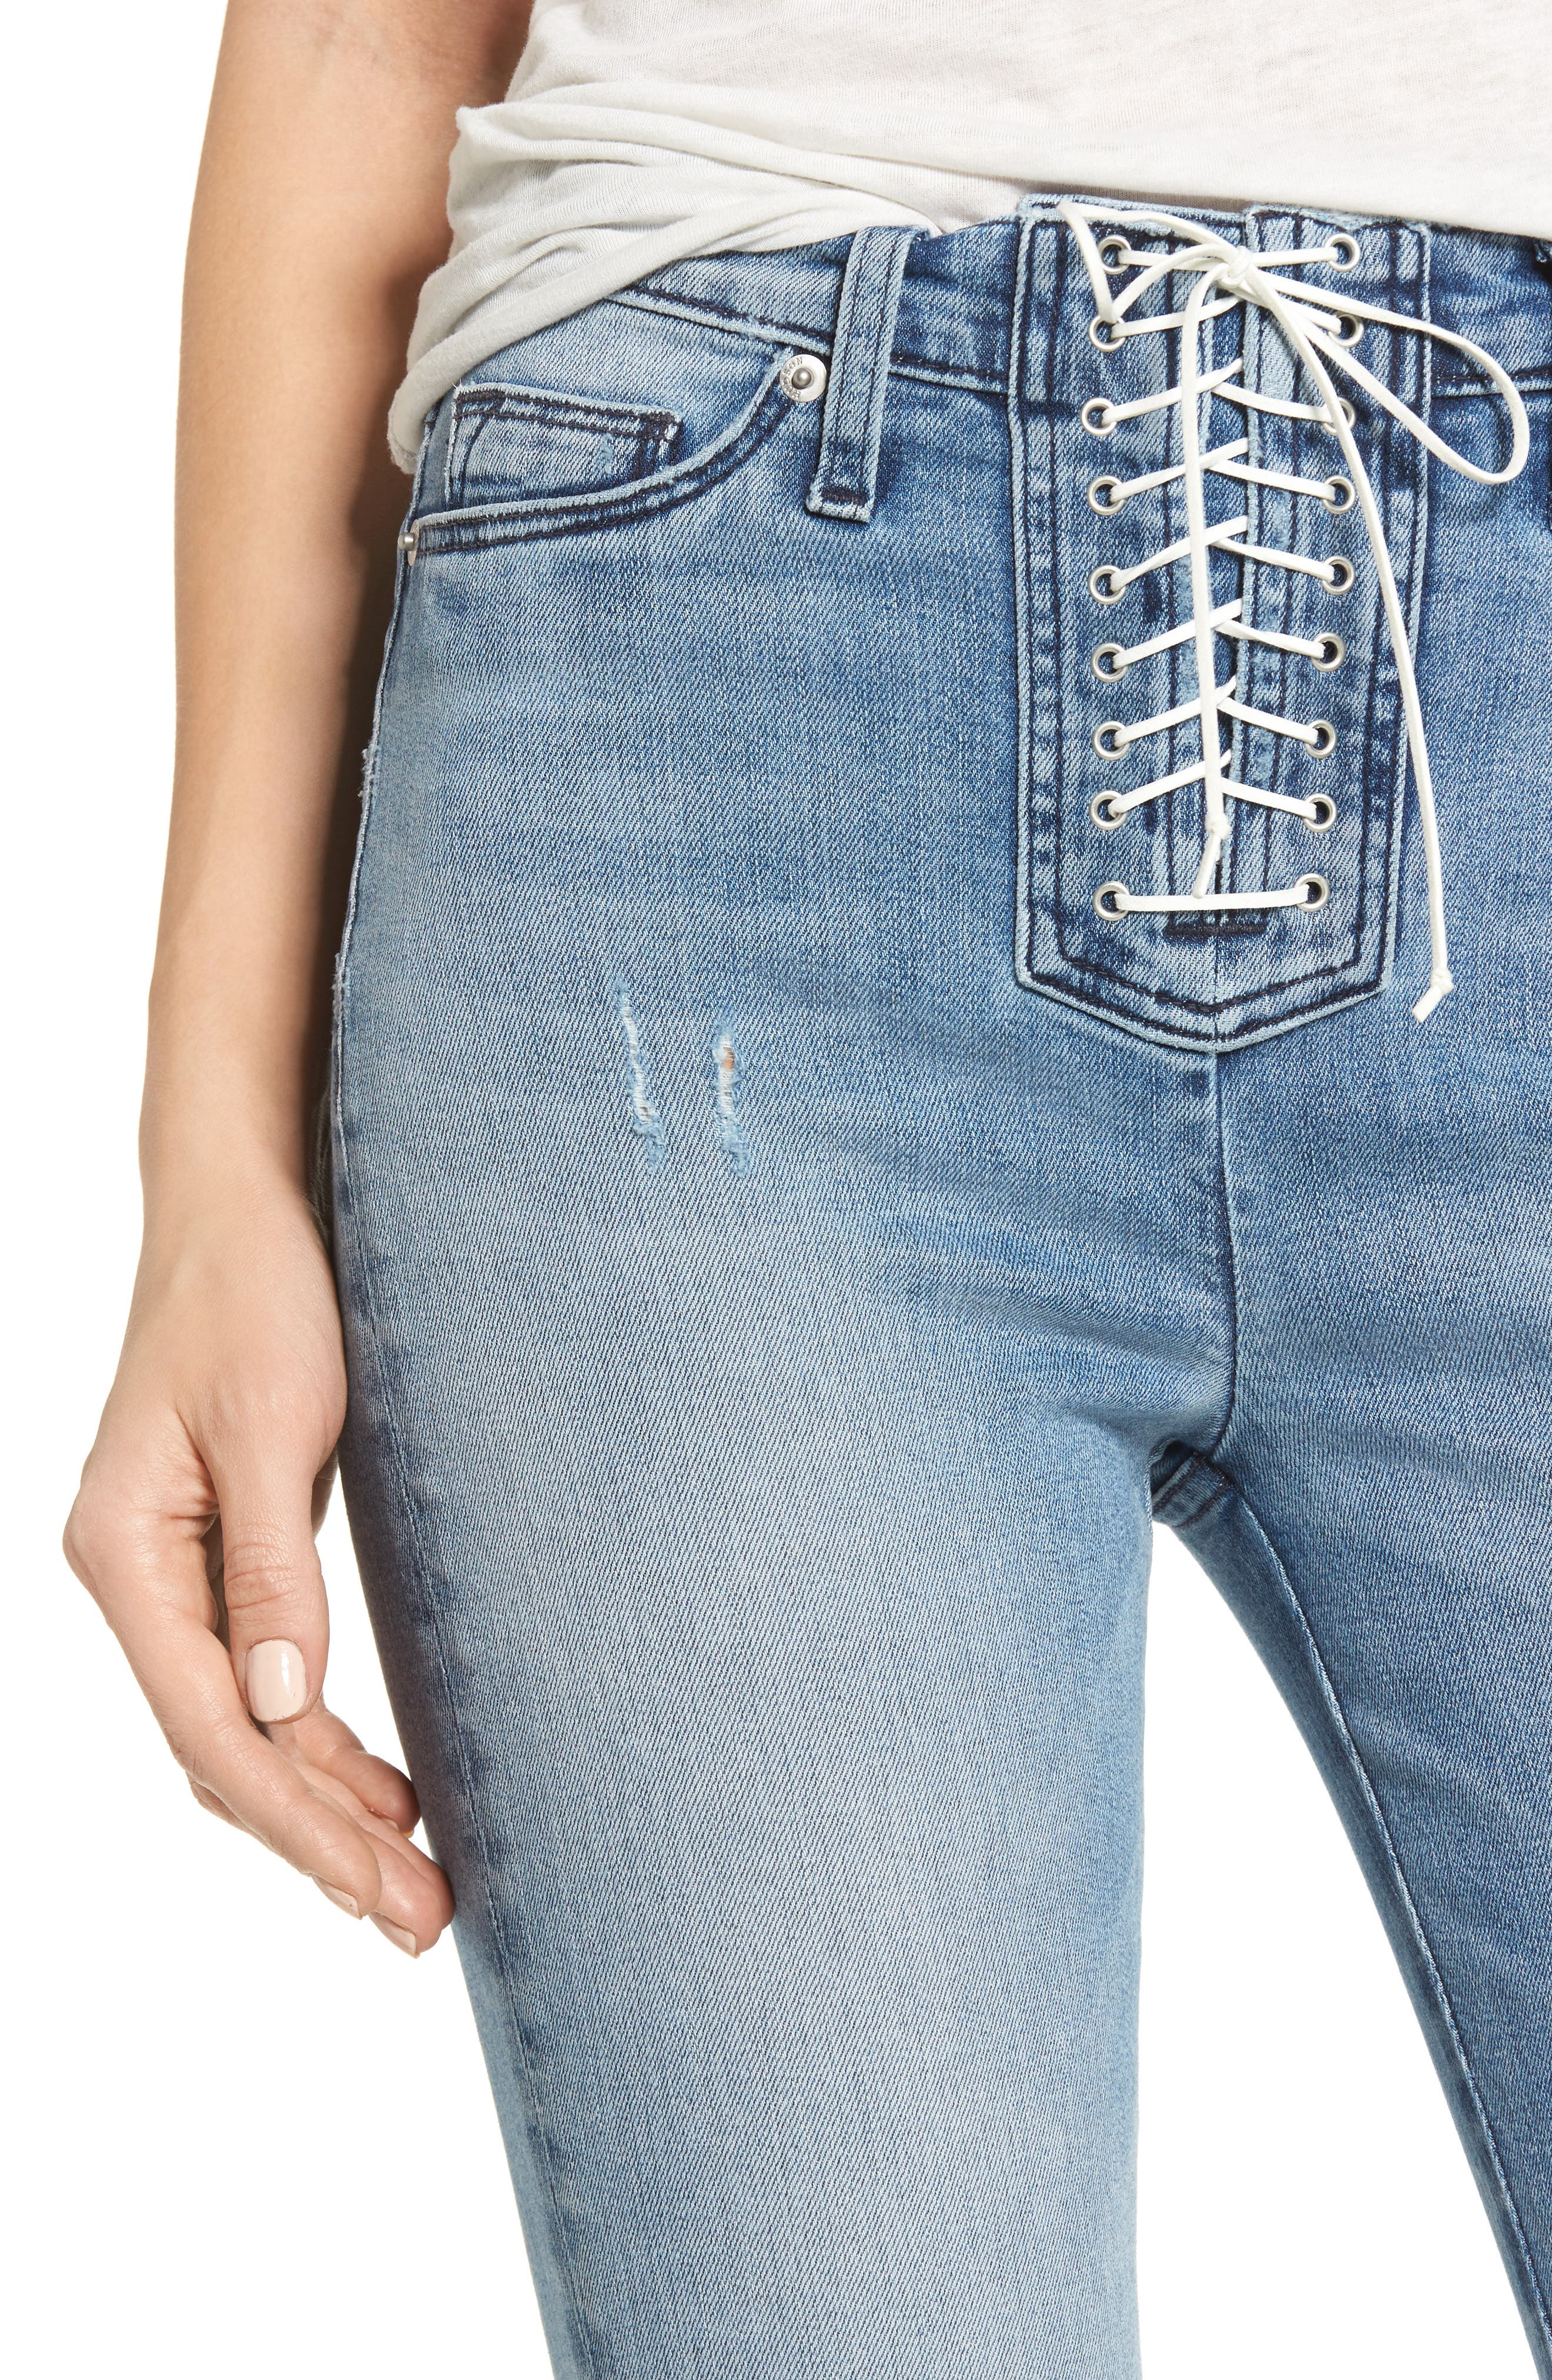 Bullocks Lace-Up High Waist Super Skinny Jeans,                             Alternate thumbnail 4, color,                             Guilty Pleasure